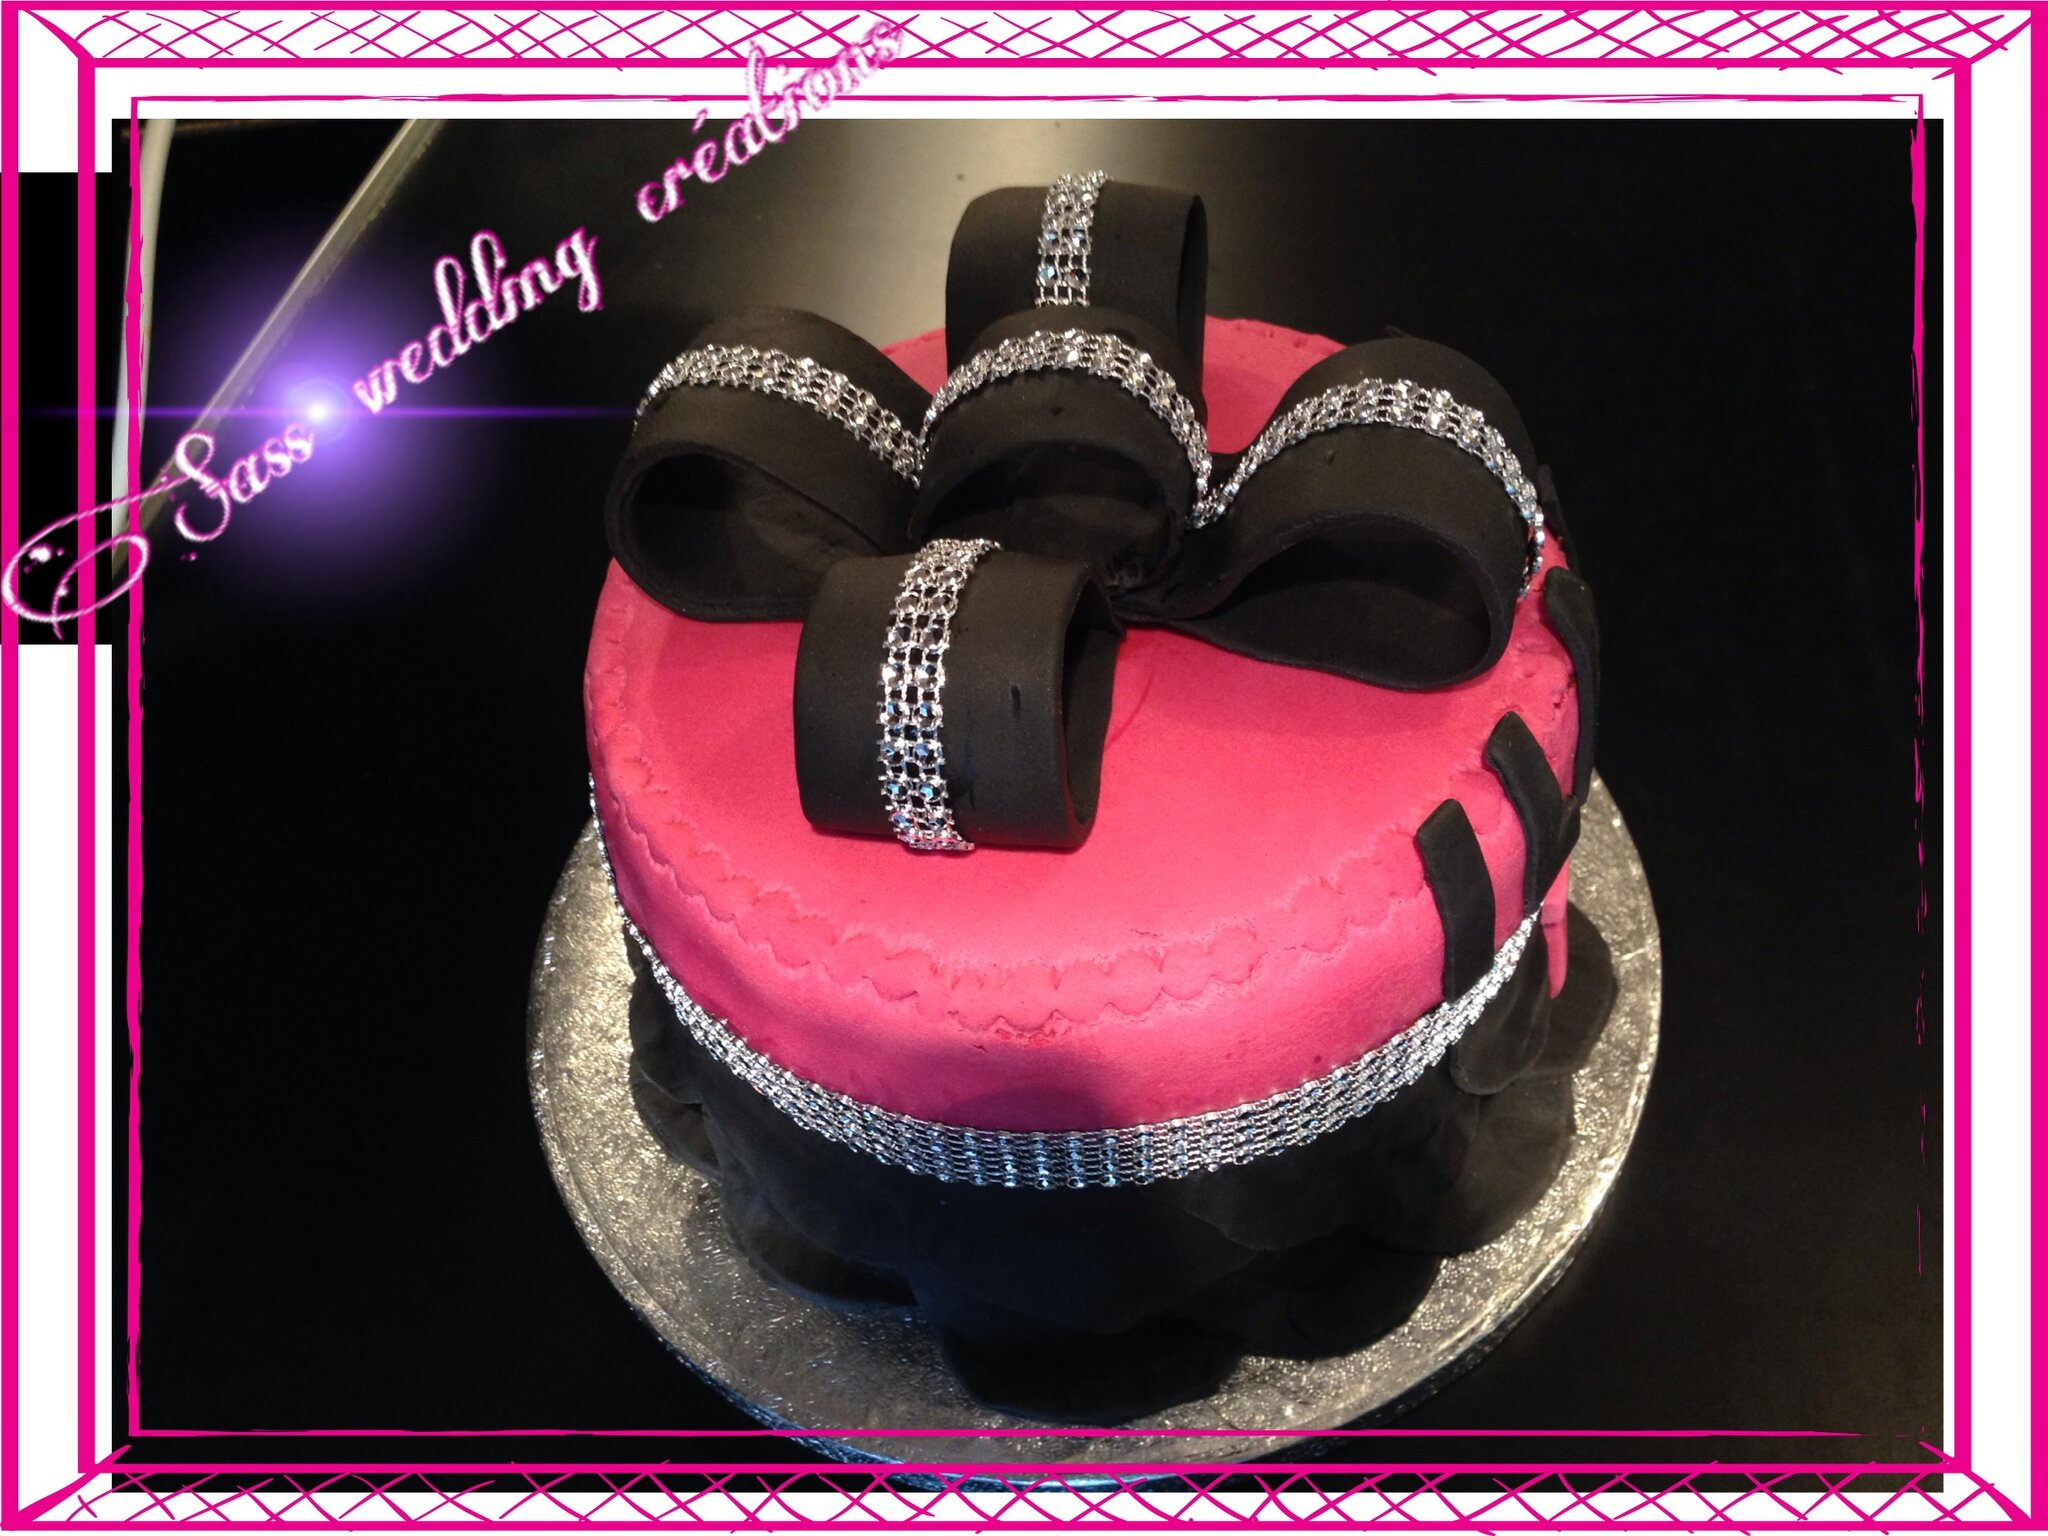 G teau au chocolat tr s girly pour f ter la majorit sass wedding creation - Gateau anniversaire 18 ans ...